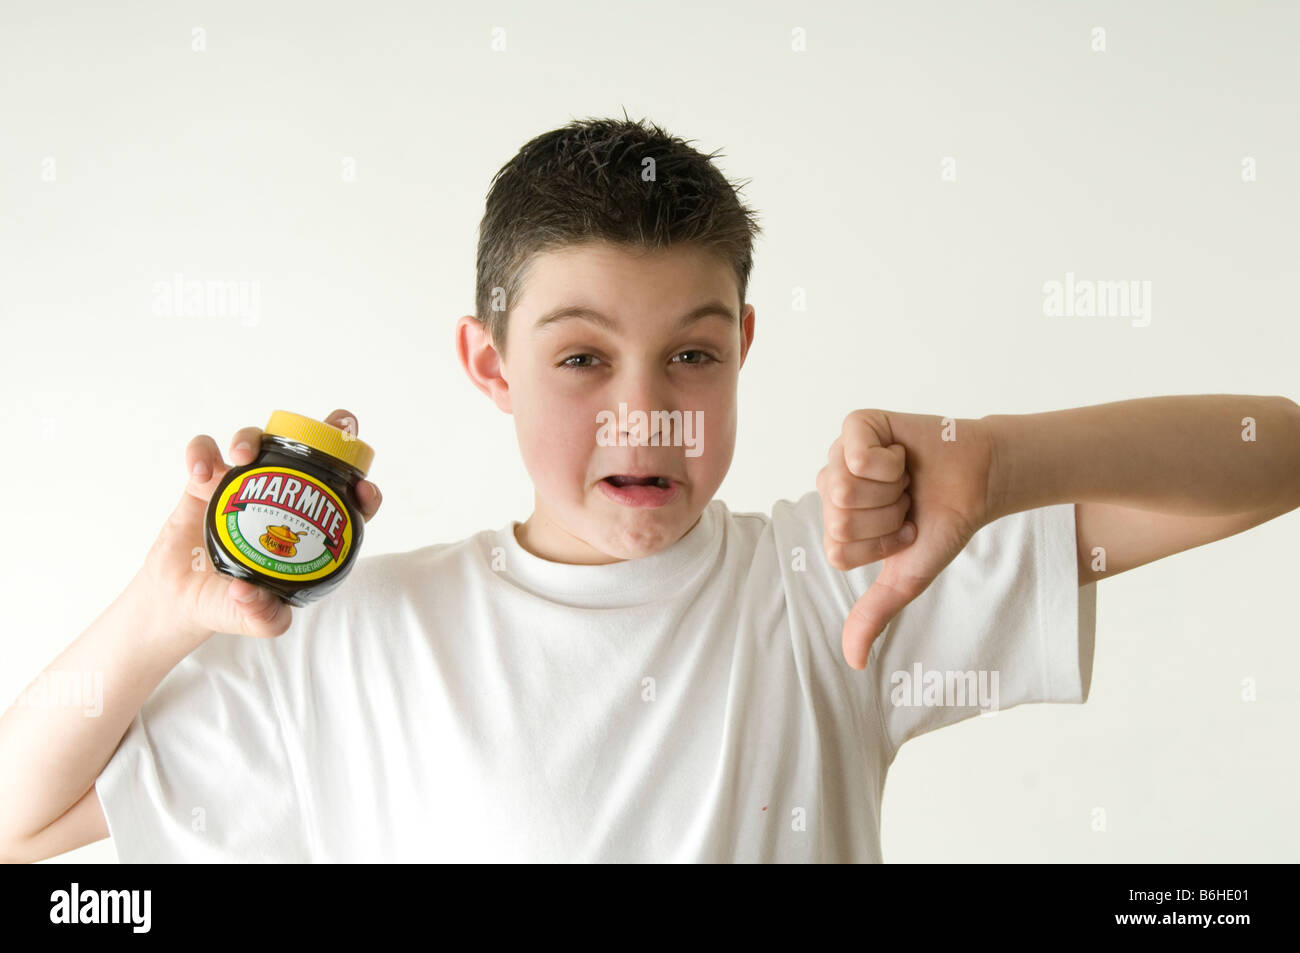 marmite love or hate it relationship acquired taste flavour flavor strong yuck yum yum - Stock Image